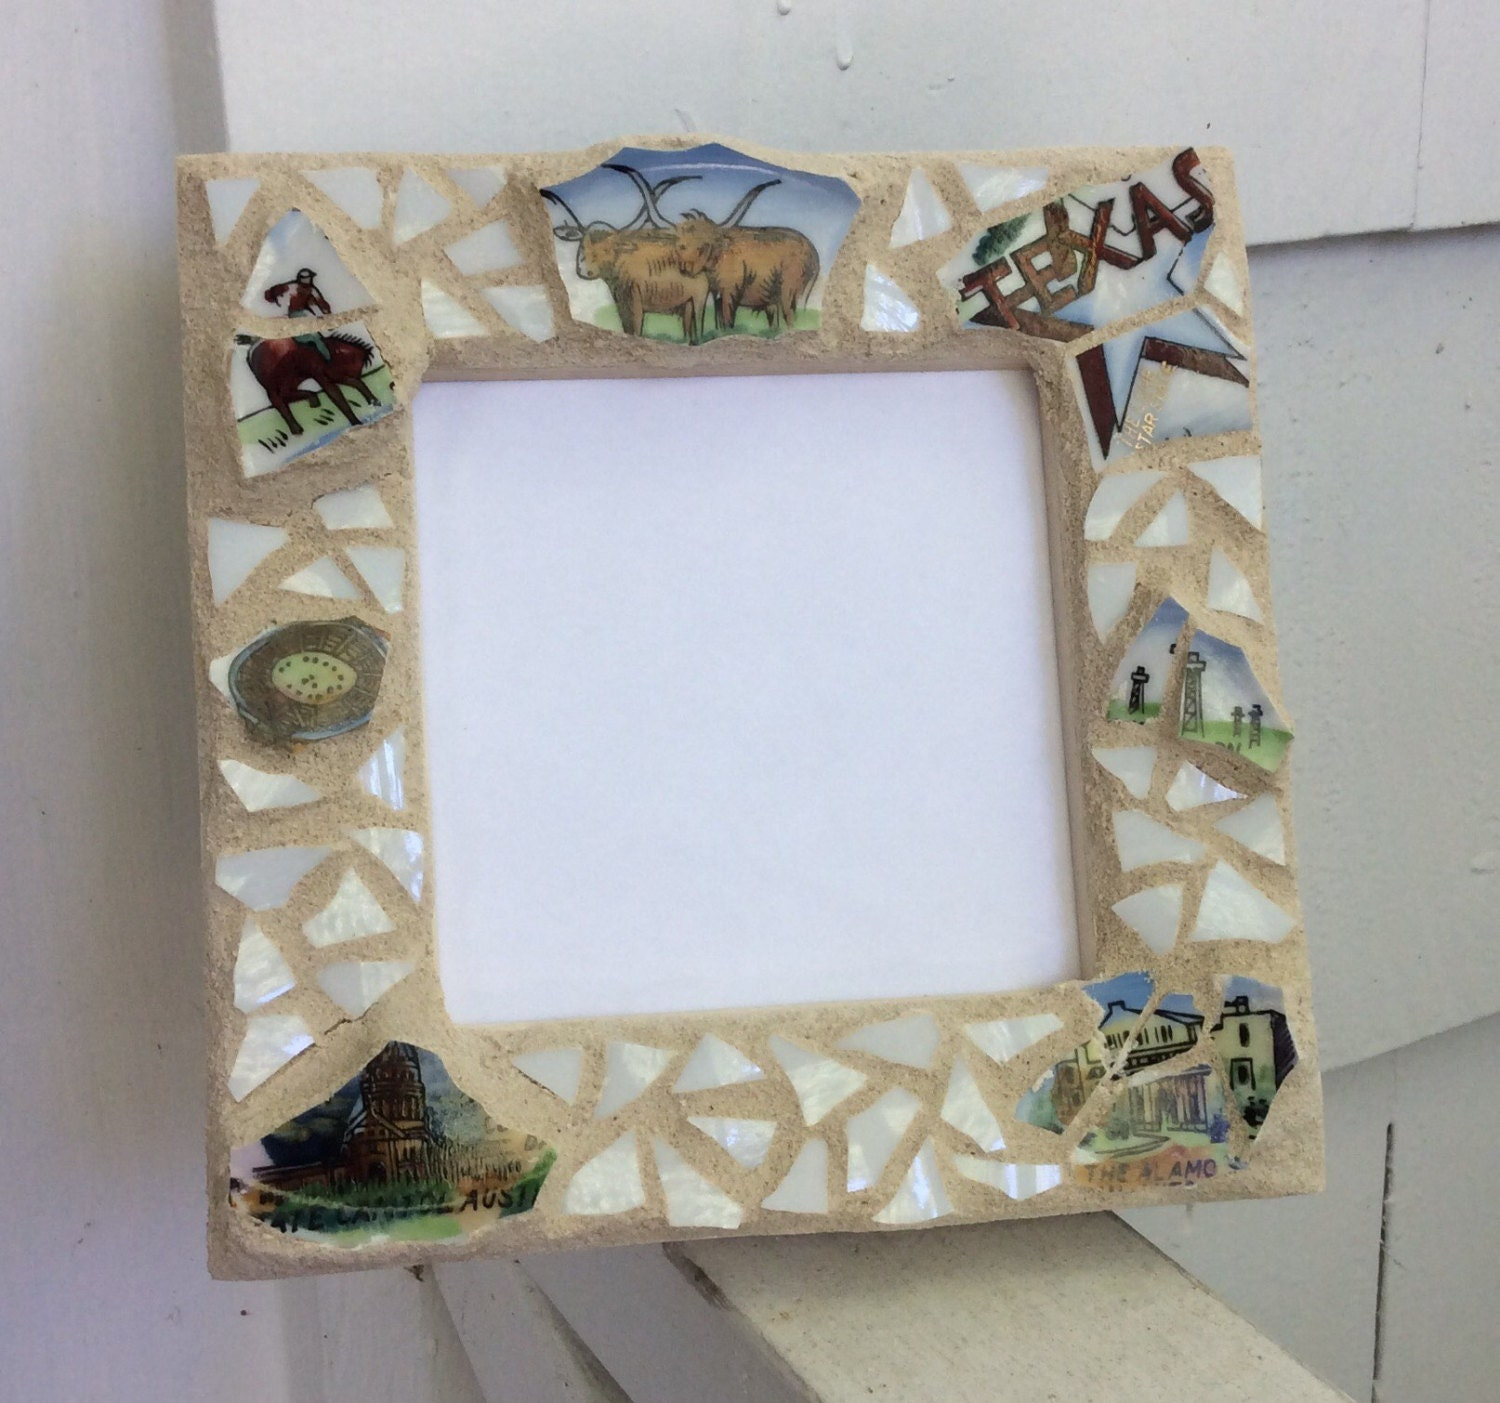 Mosaic Picture Frame Texas made from recycled souvenir plate | Etsy